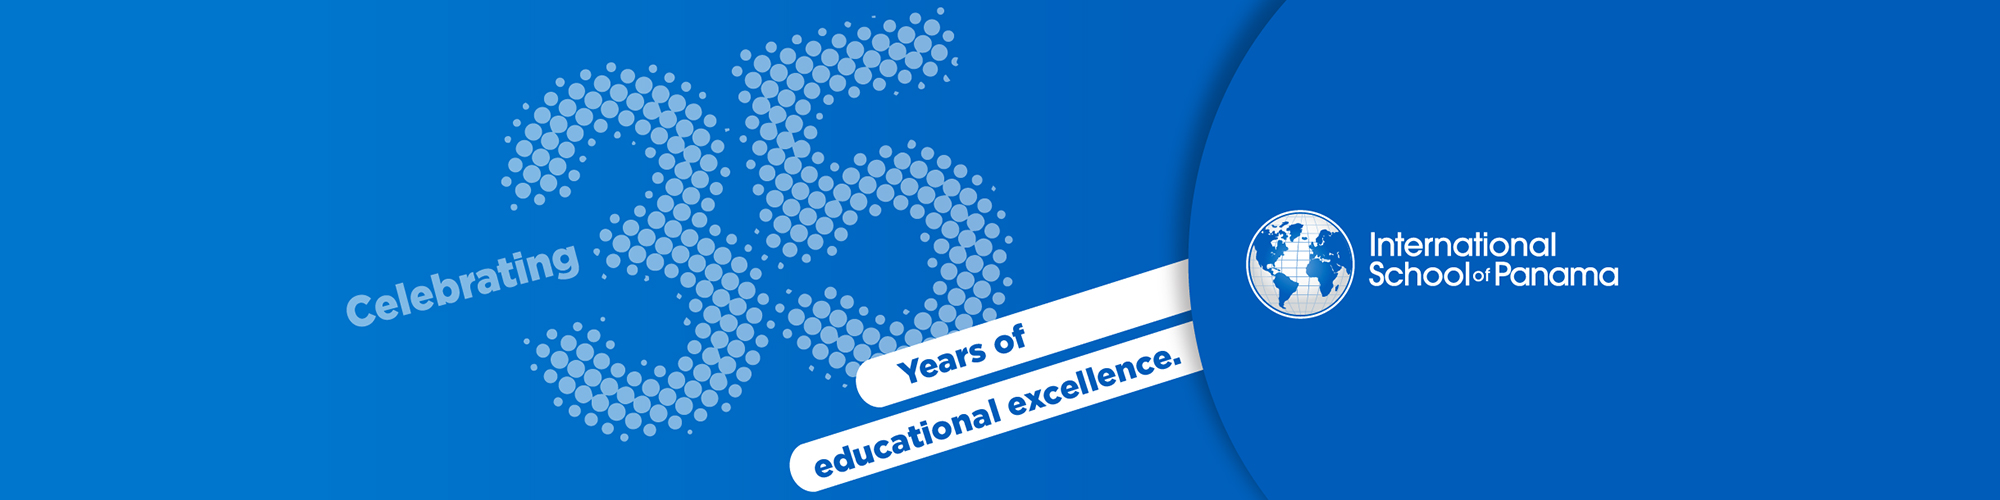 Celebrating 35 Years of Educational Excellence